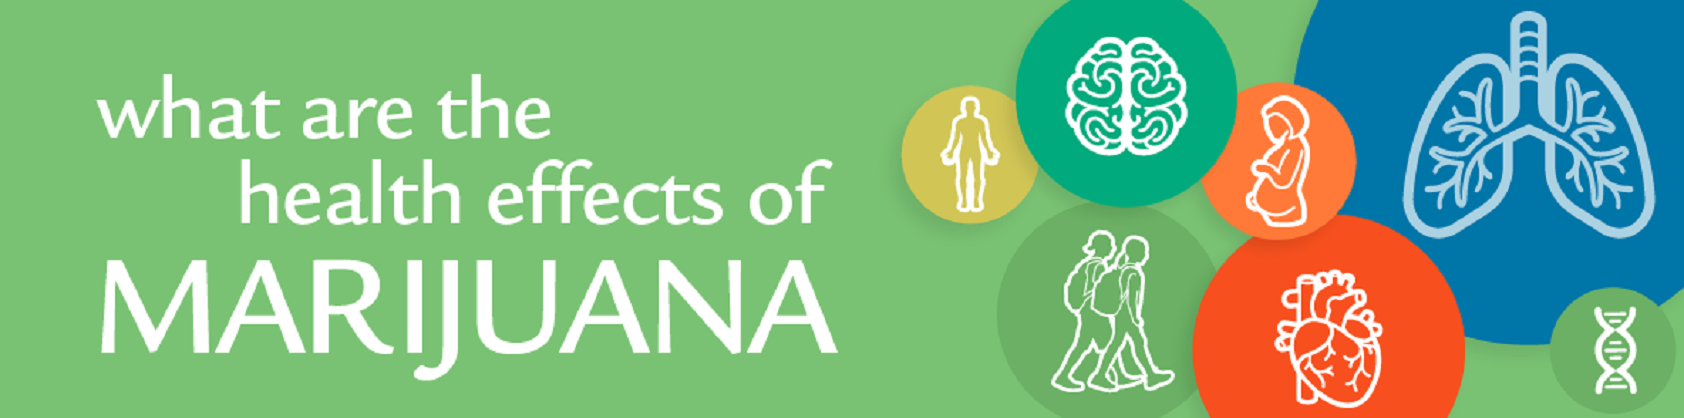 What are the health effects of marijuana?